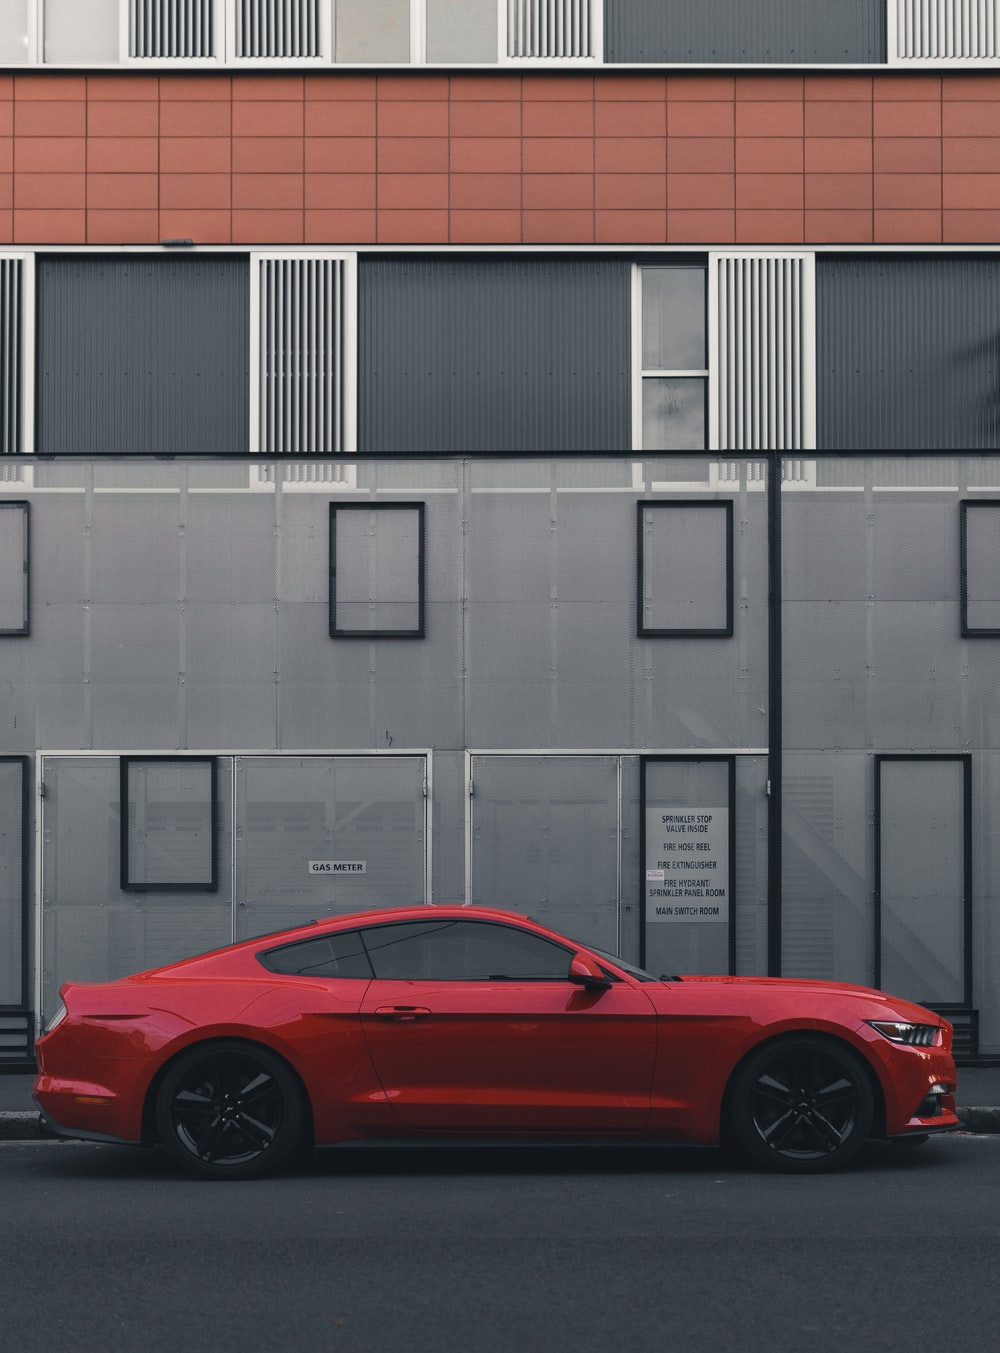 red Ford Mustang coupe parked beside the building